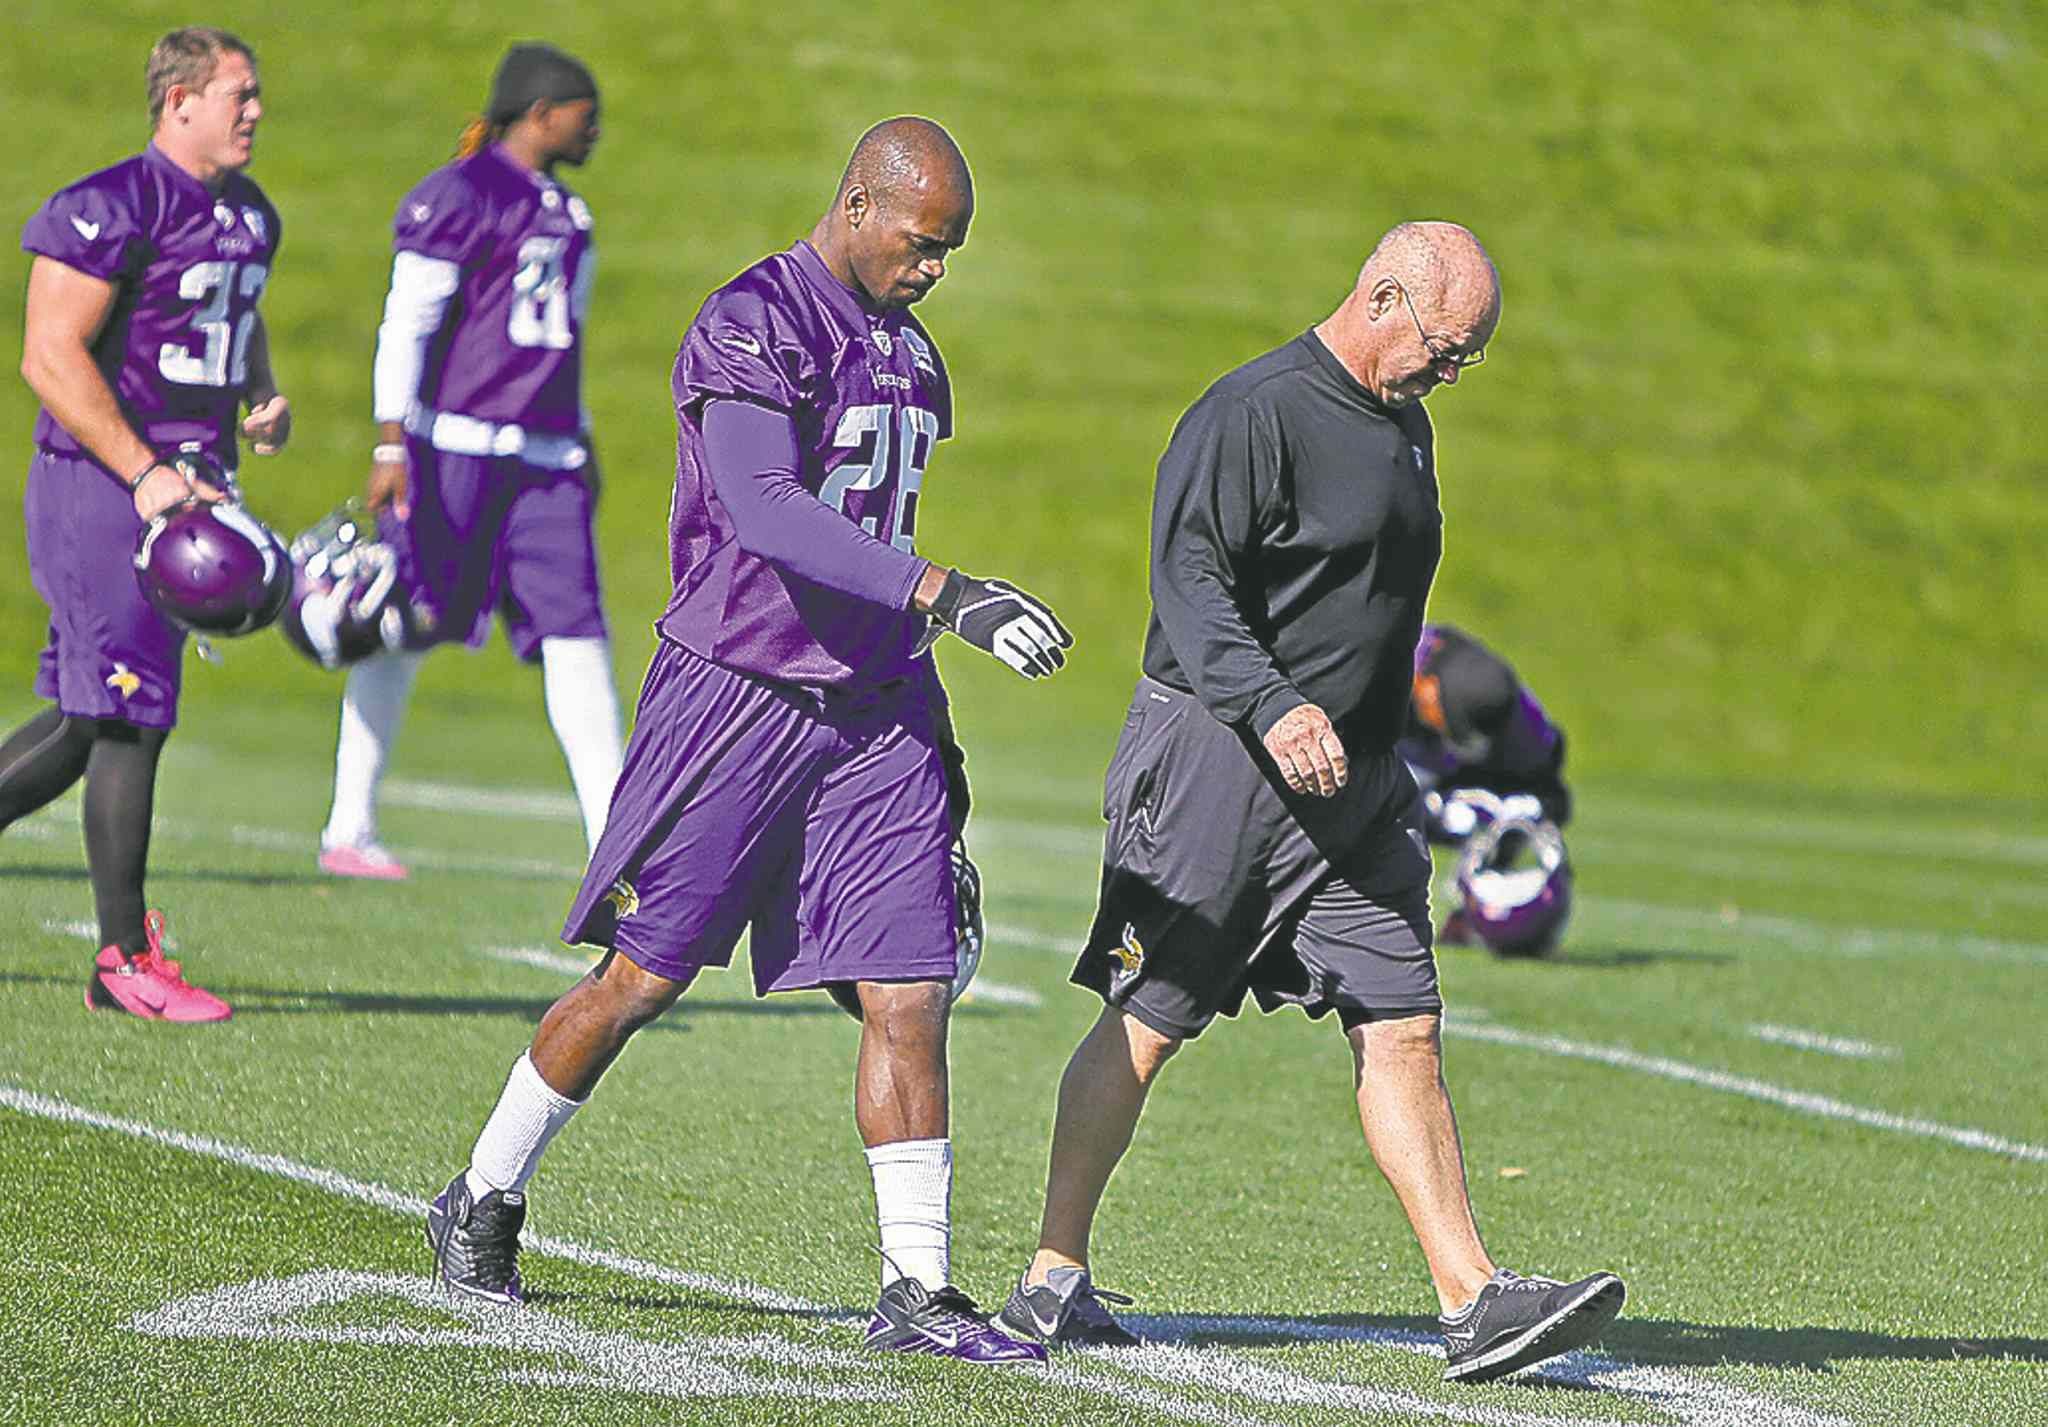 Elizabeth Flores / the associated pressAdrian Peterson, second from right, starts practice Friday.